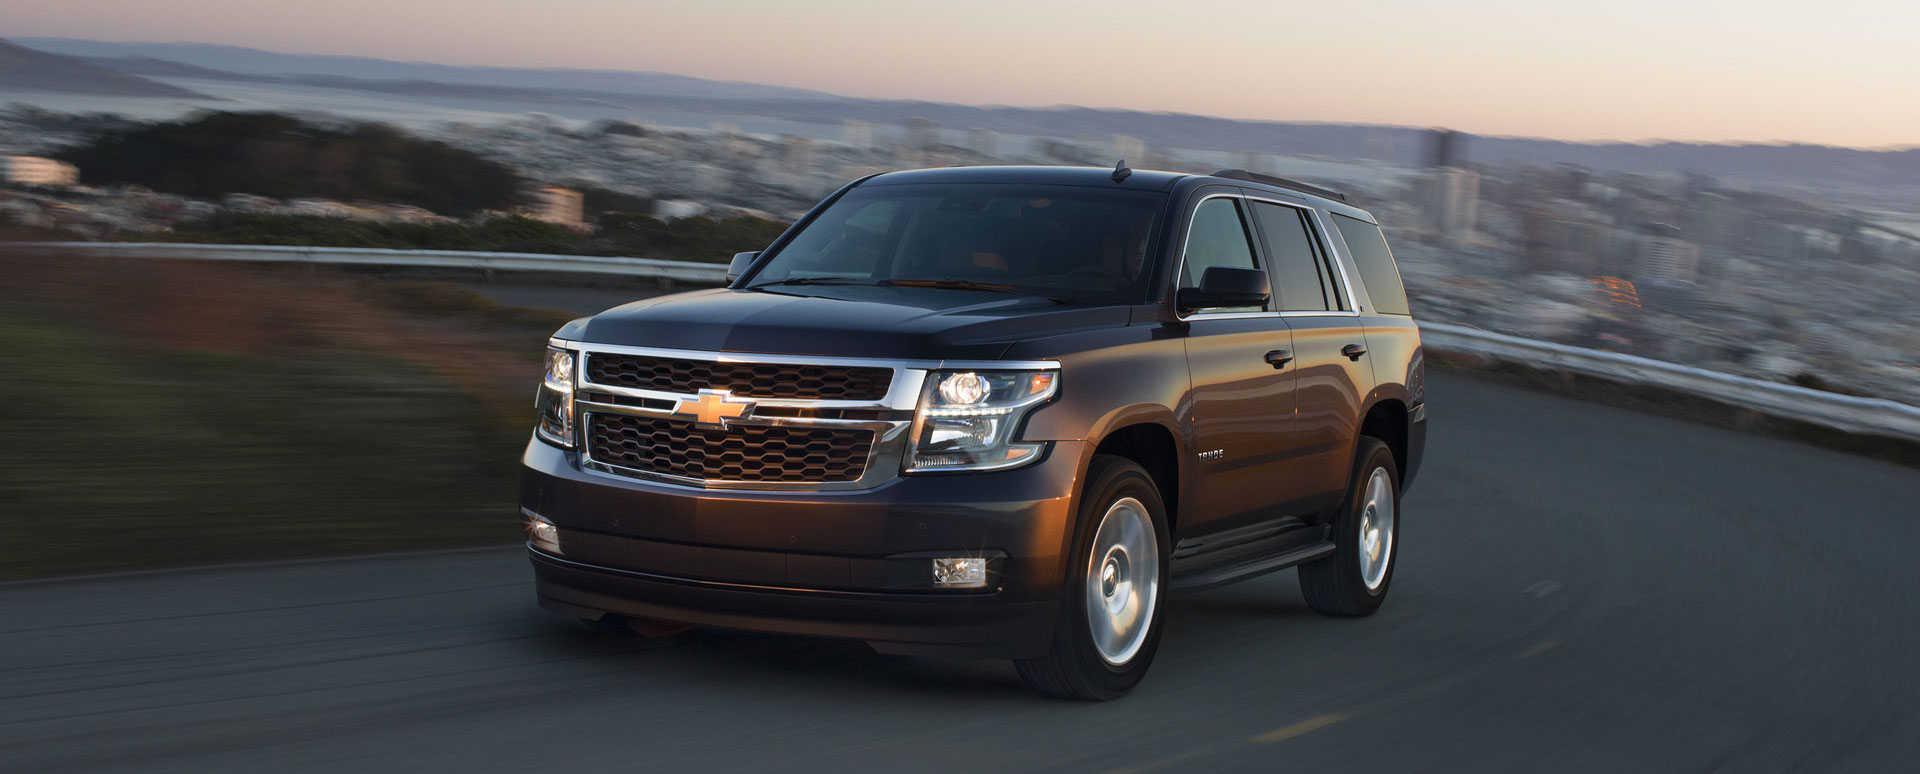 Chevrolet Of Naperville >> 2017 Chevy Tahoe: Take a Look at the Power, Performance and Design